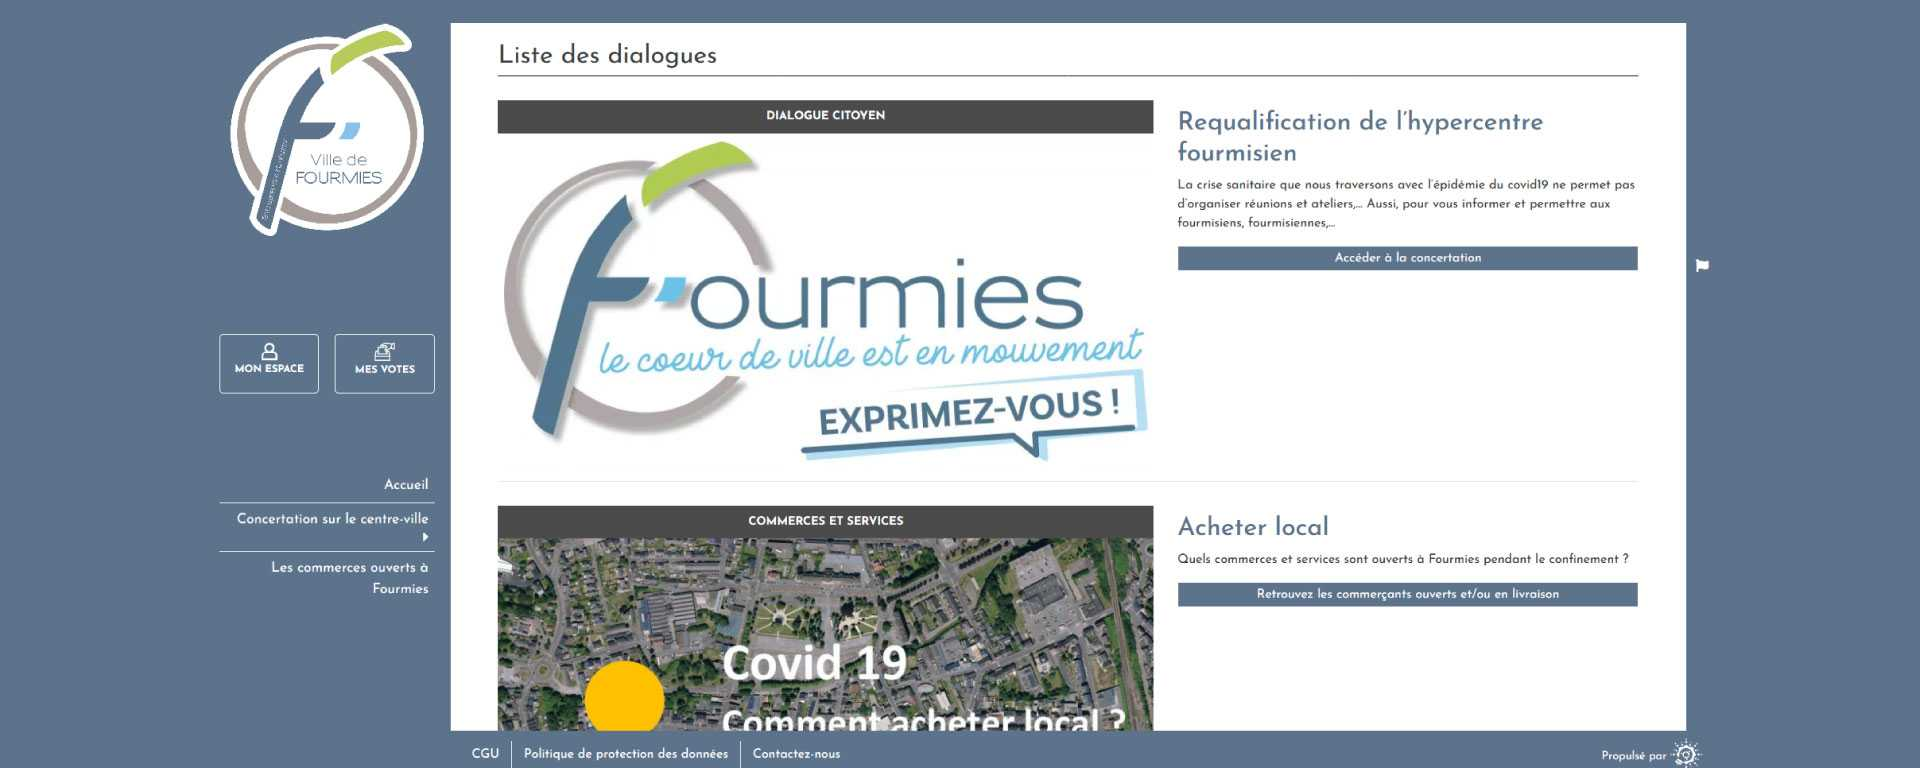 Images site Ville de Fourmies